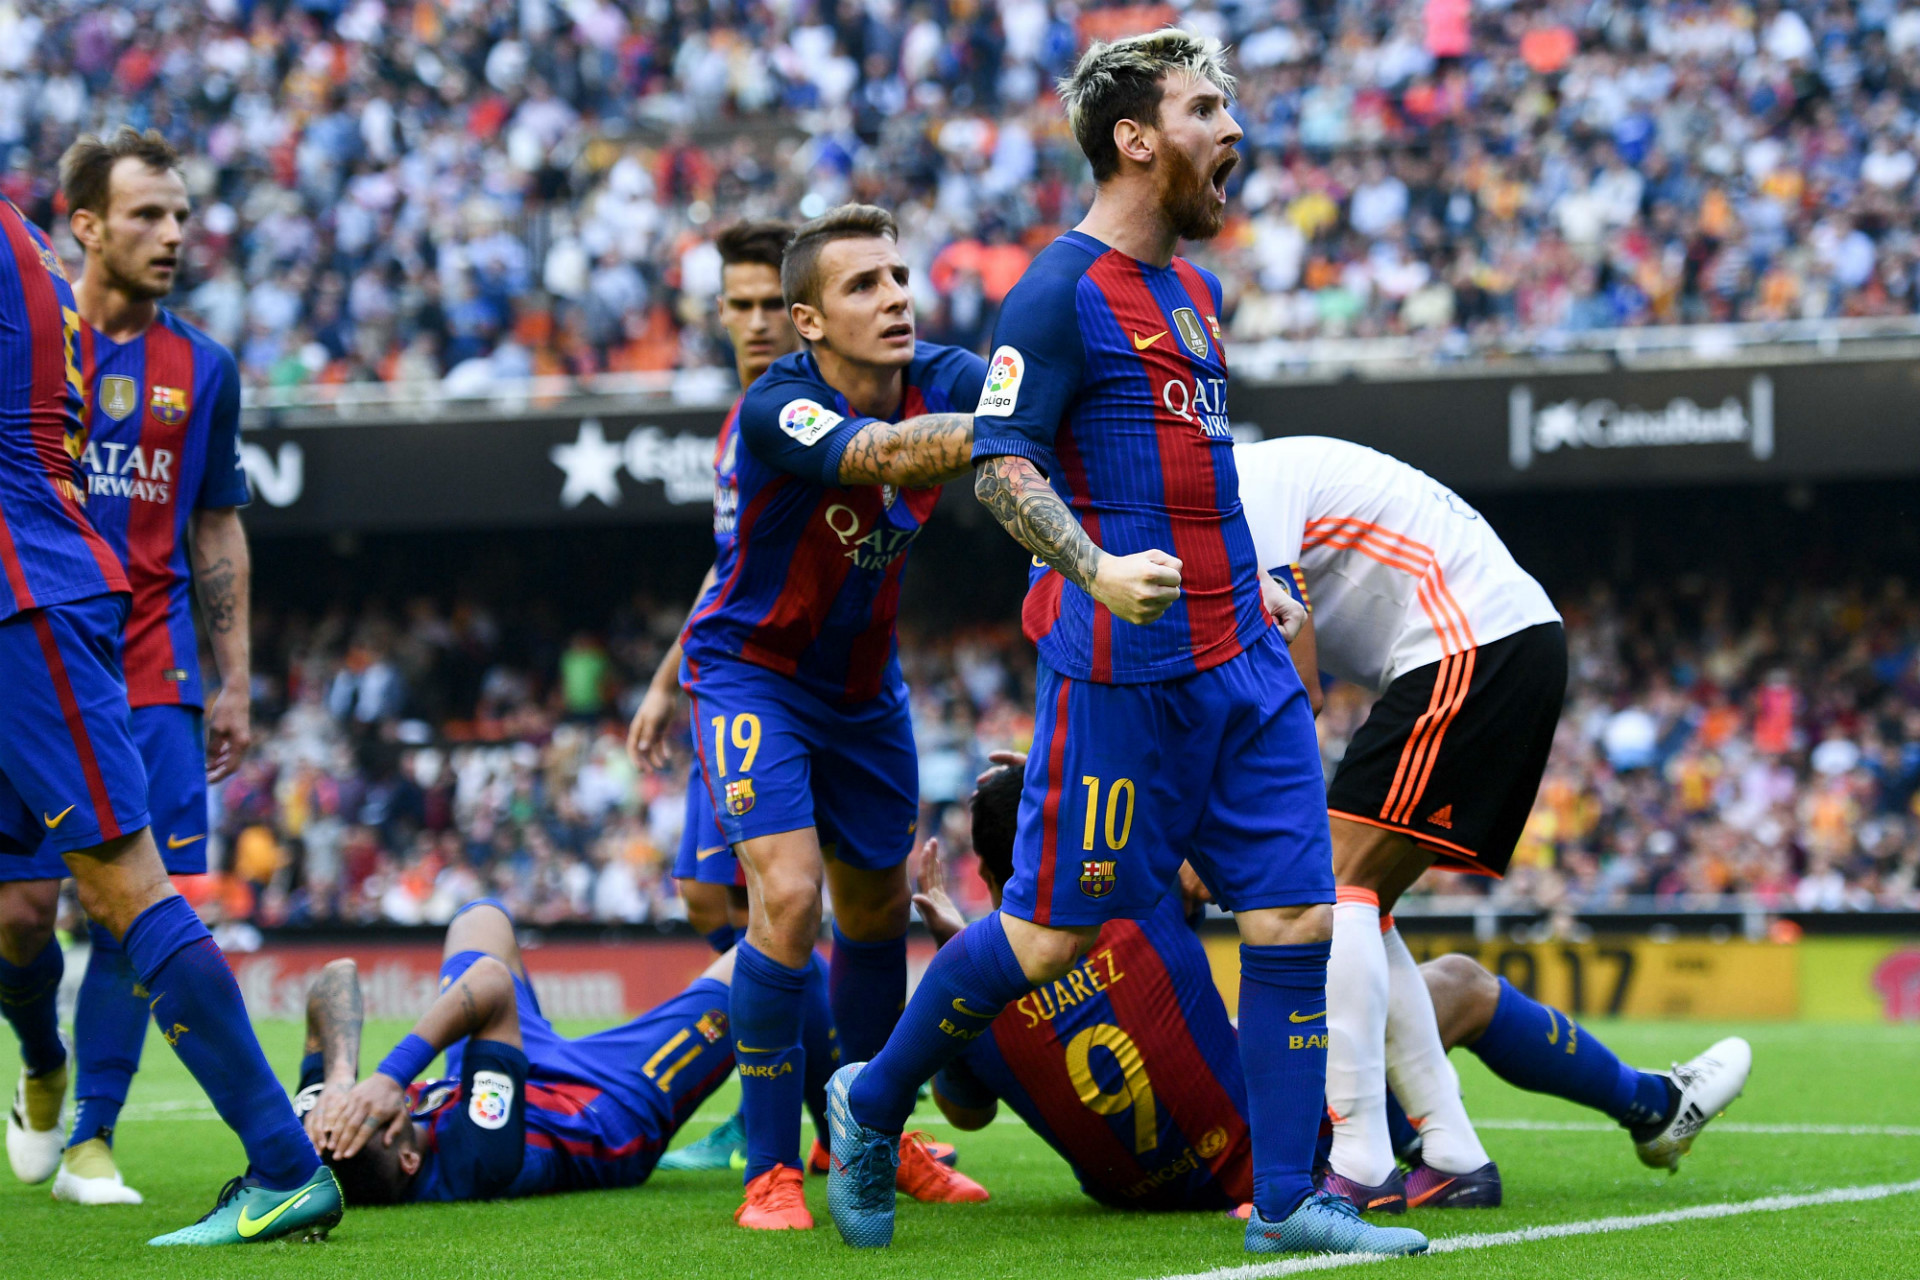 Image result for Lionel Messi curses at Valencia fans who threw objects at Barcelona